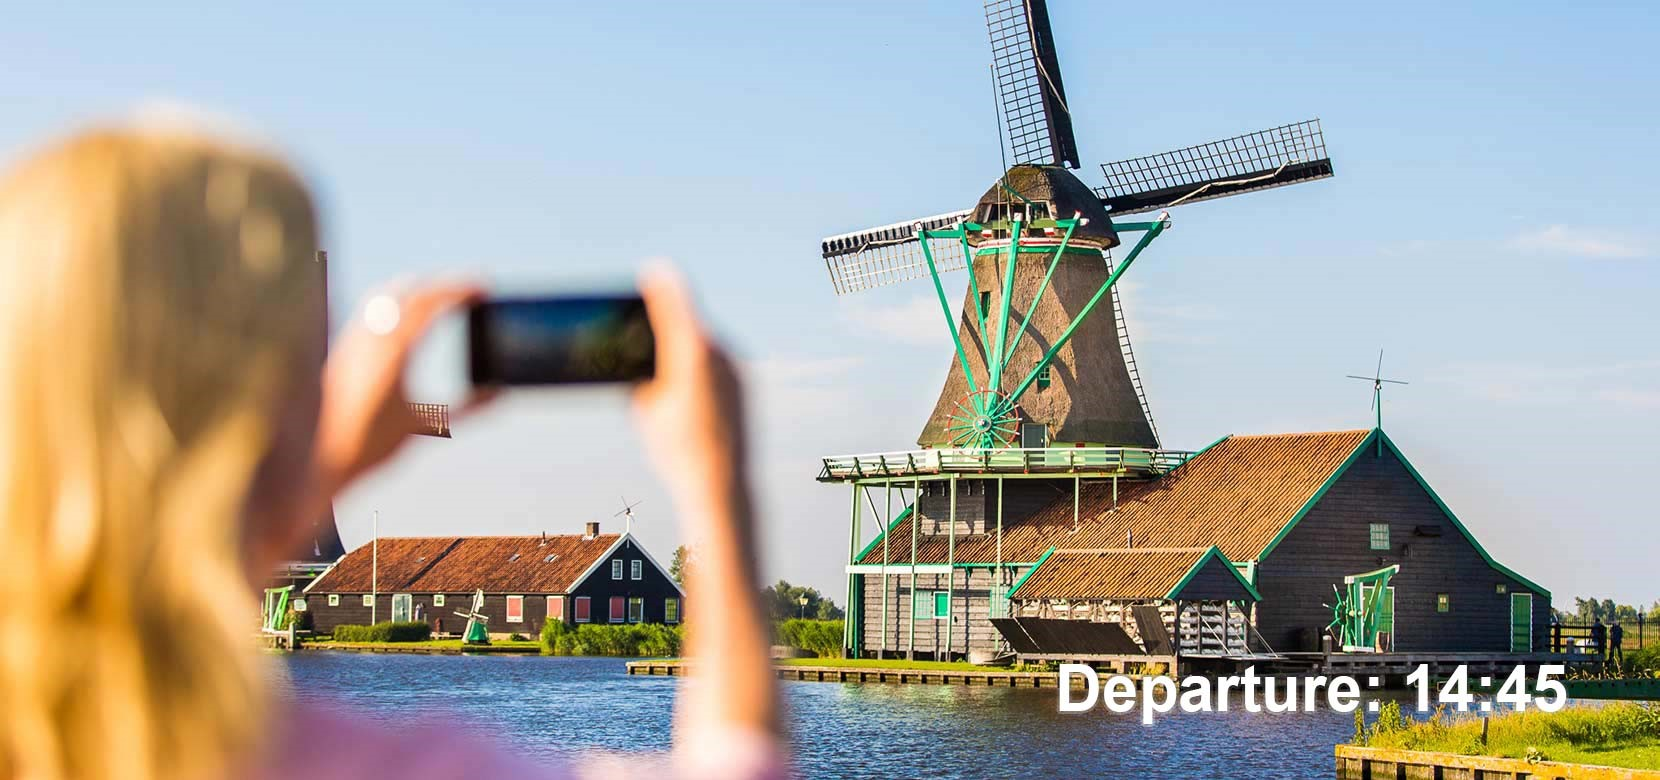 Countryside & Windmills Tour (dep. 14.45 h.) + Free Amsterdam Canal Cruise 1 h.